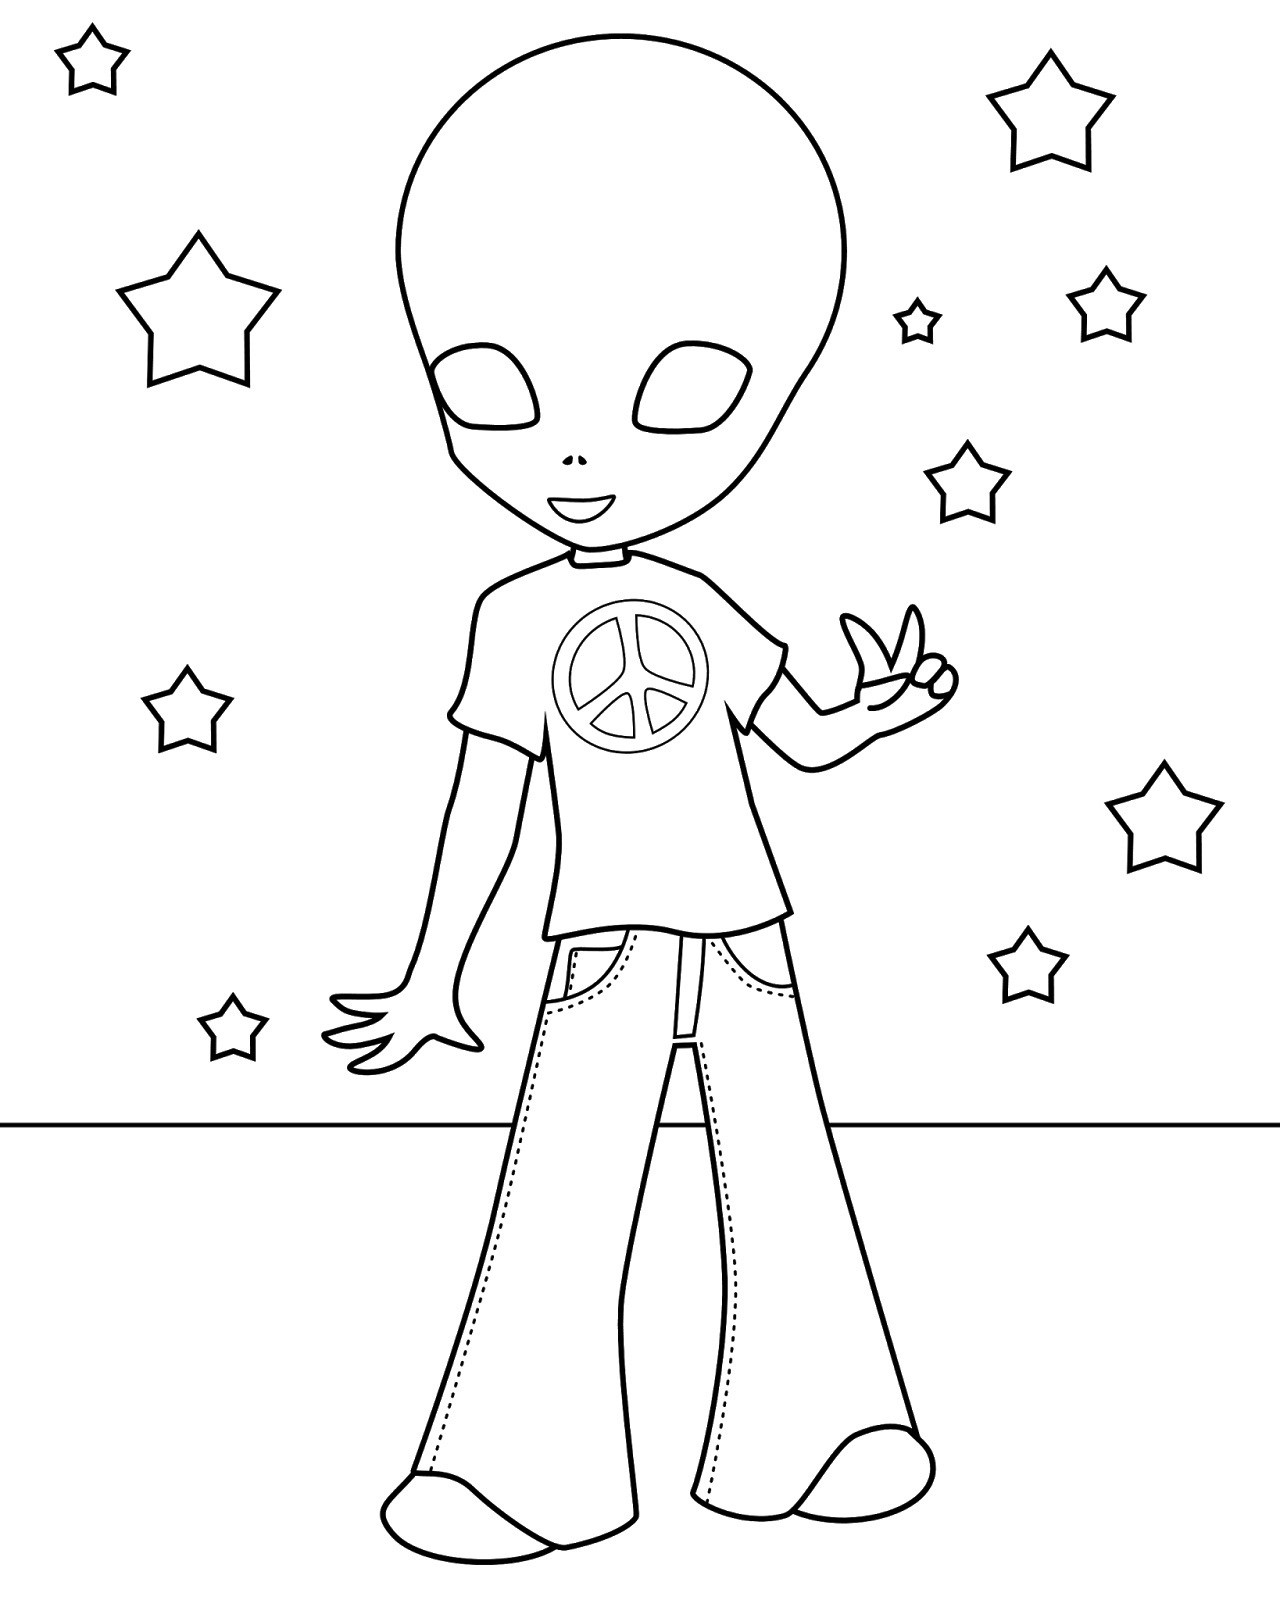 Cute Alien Coloring Page